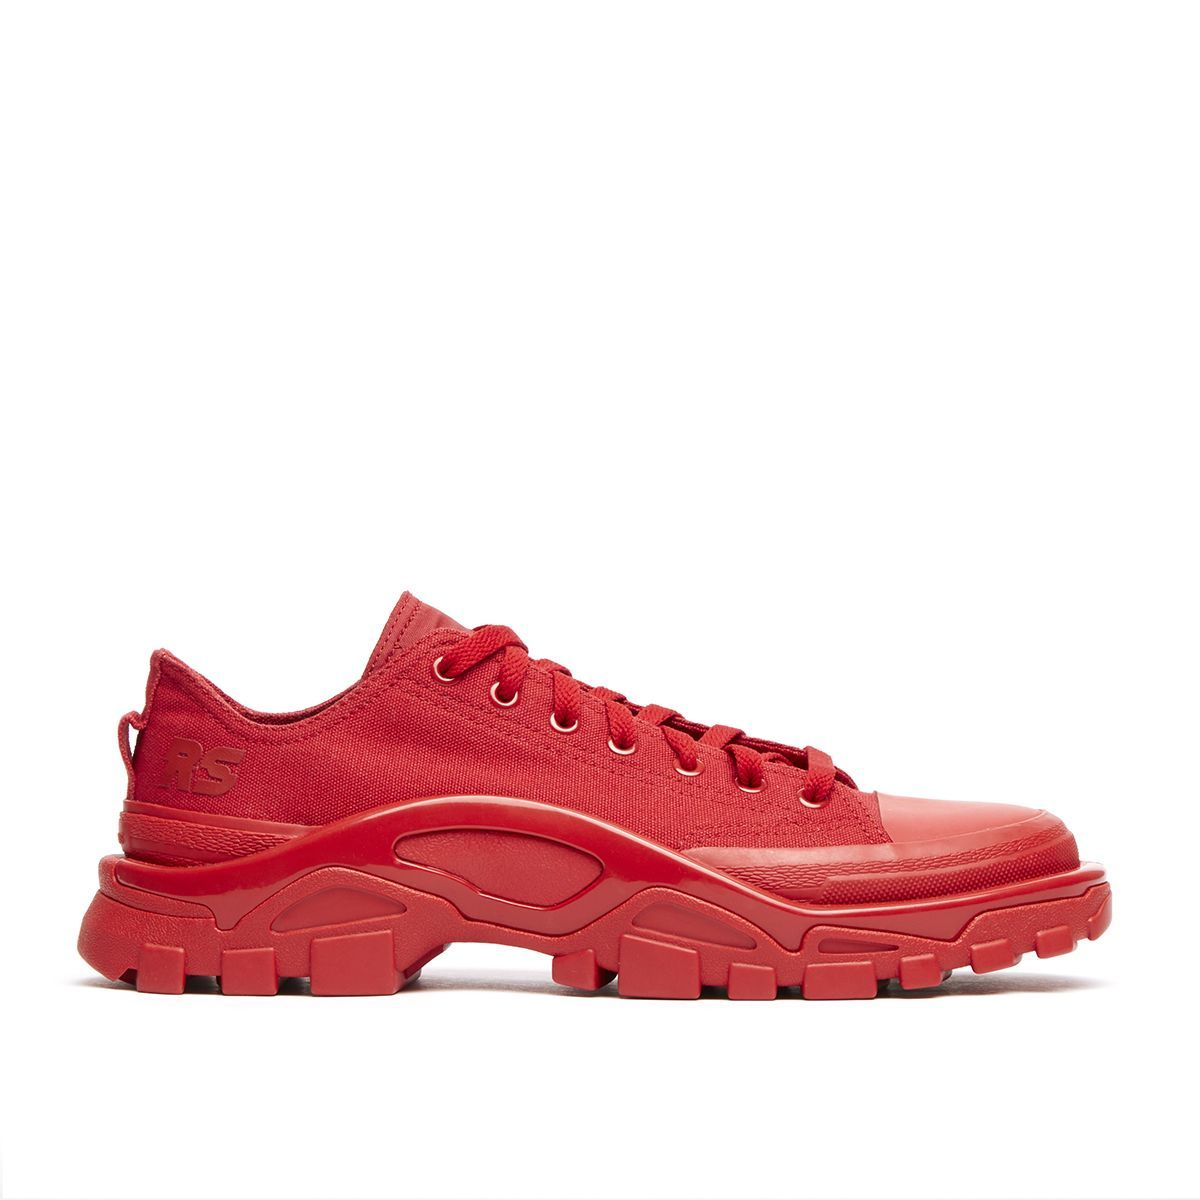 official photos c89cd 5f678 ADIDAS BY RAF SIMONS DETROIT RUNNER SNEAKERS. adidasbyrafsimons shoes   Peinados, Zapatos